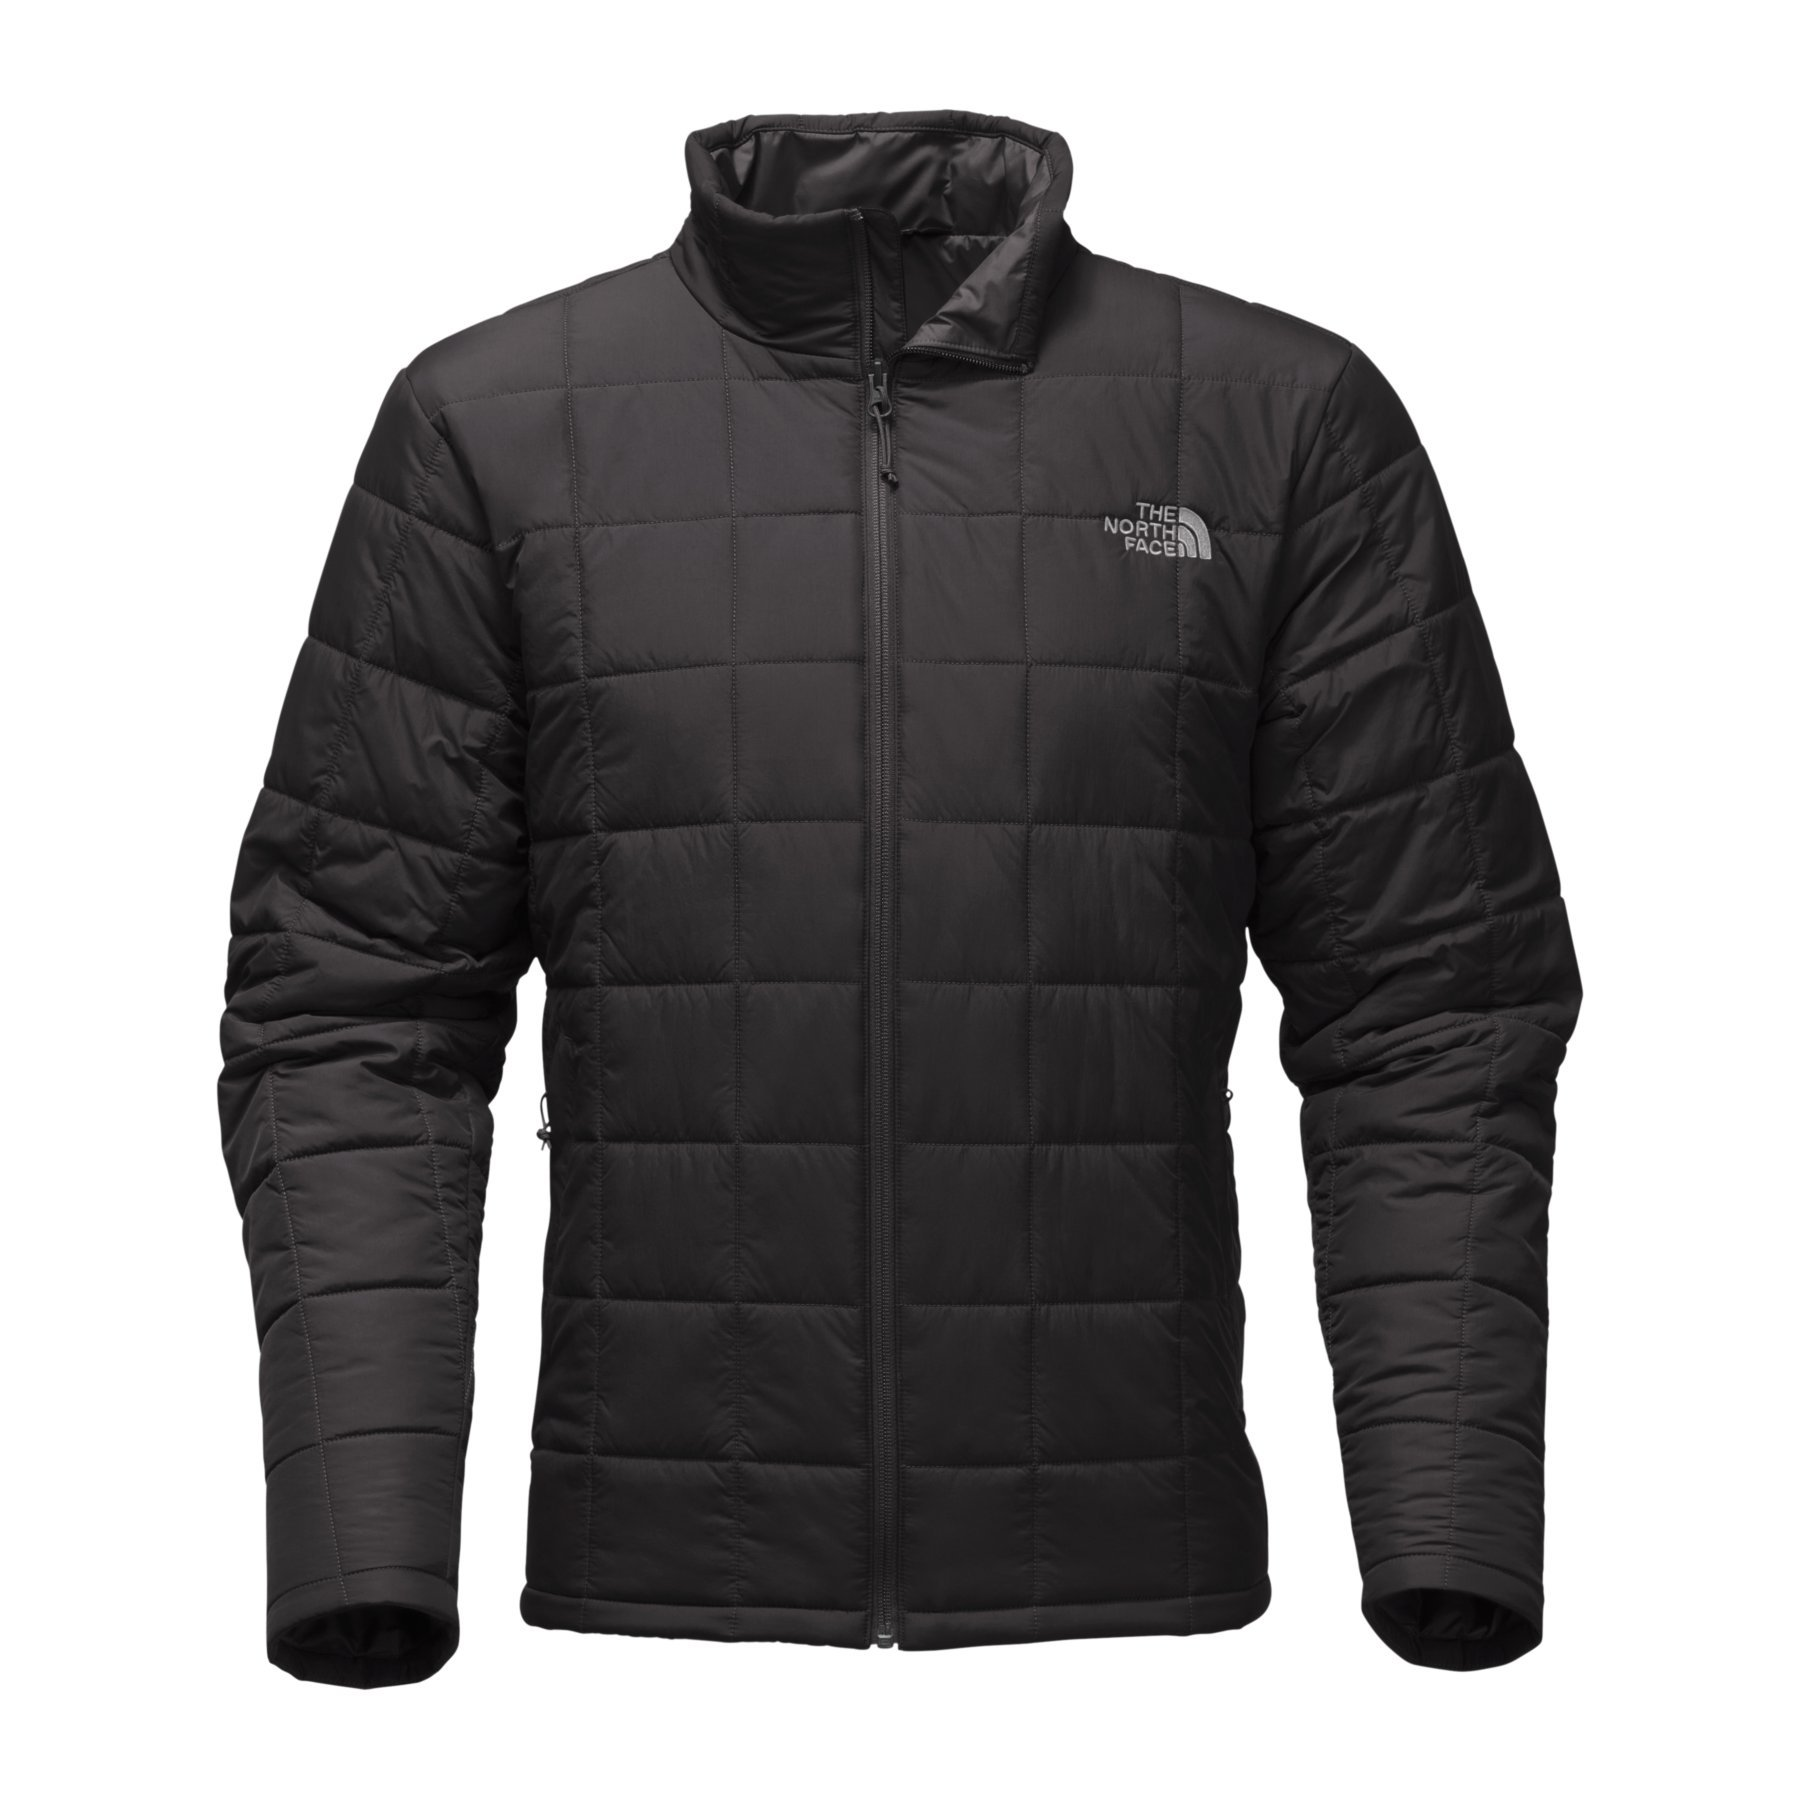 The North Face Men's Harway Jacket - TNF Black - XL by The North Face